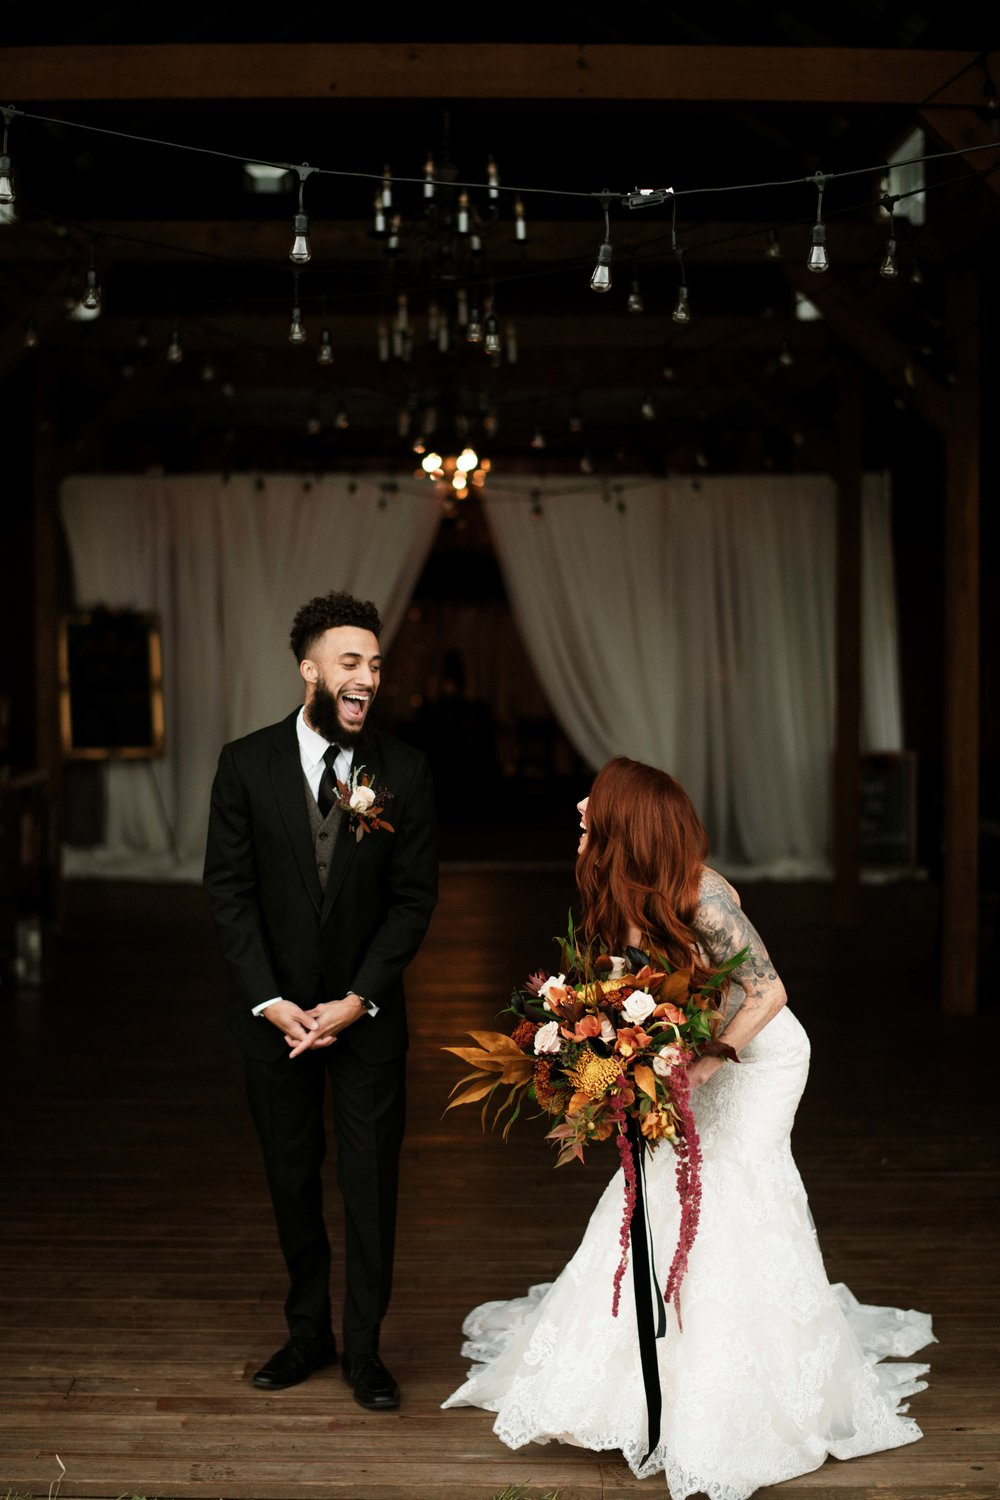 Laughing Bride and Groom Fall Wedding Rich Colors